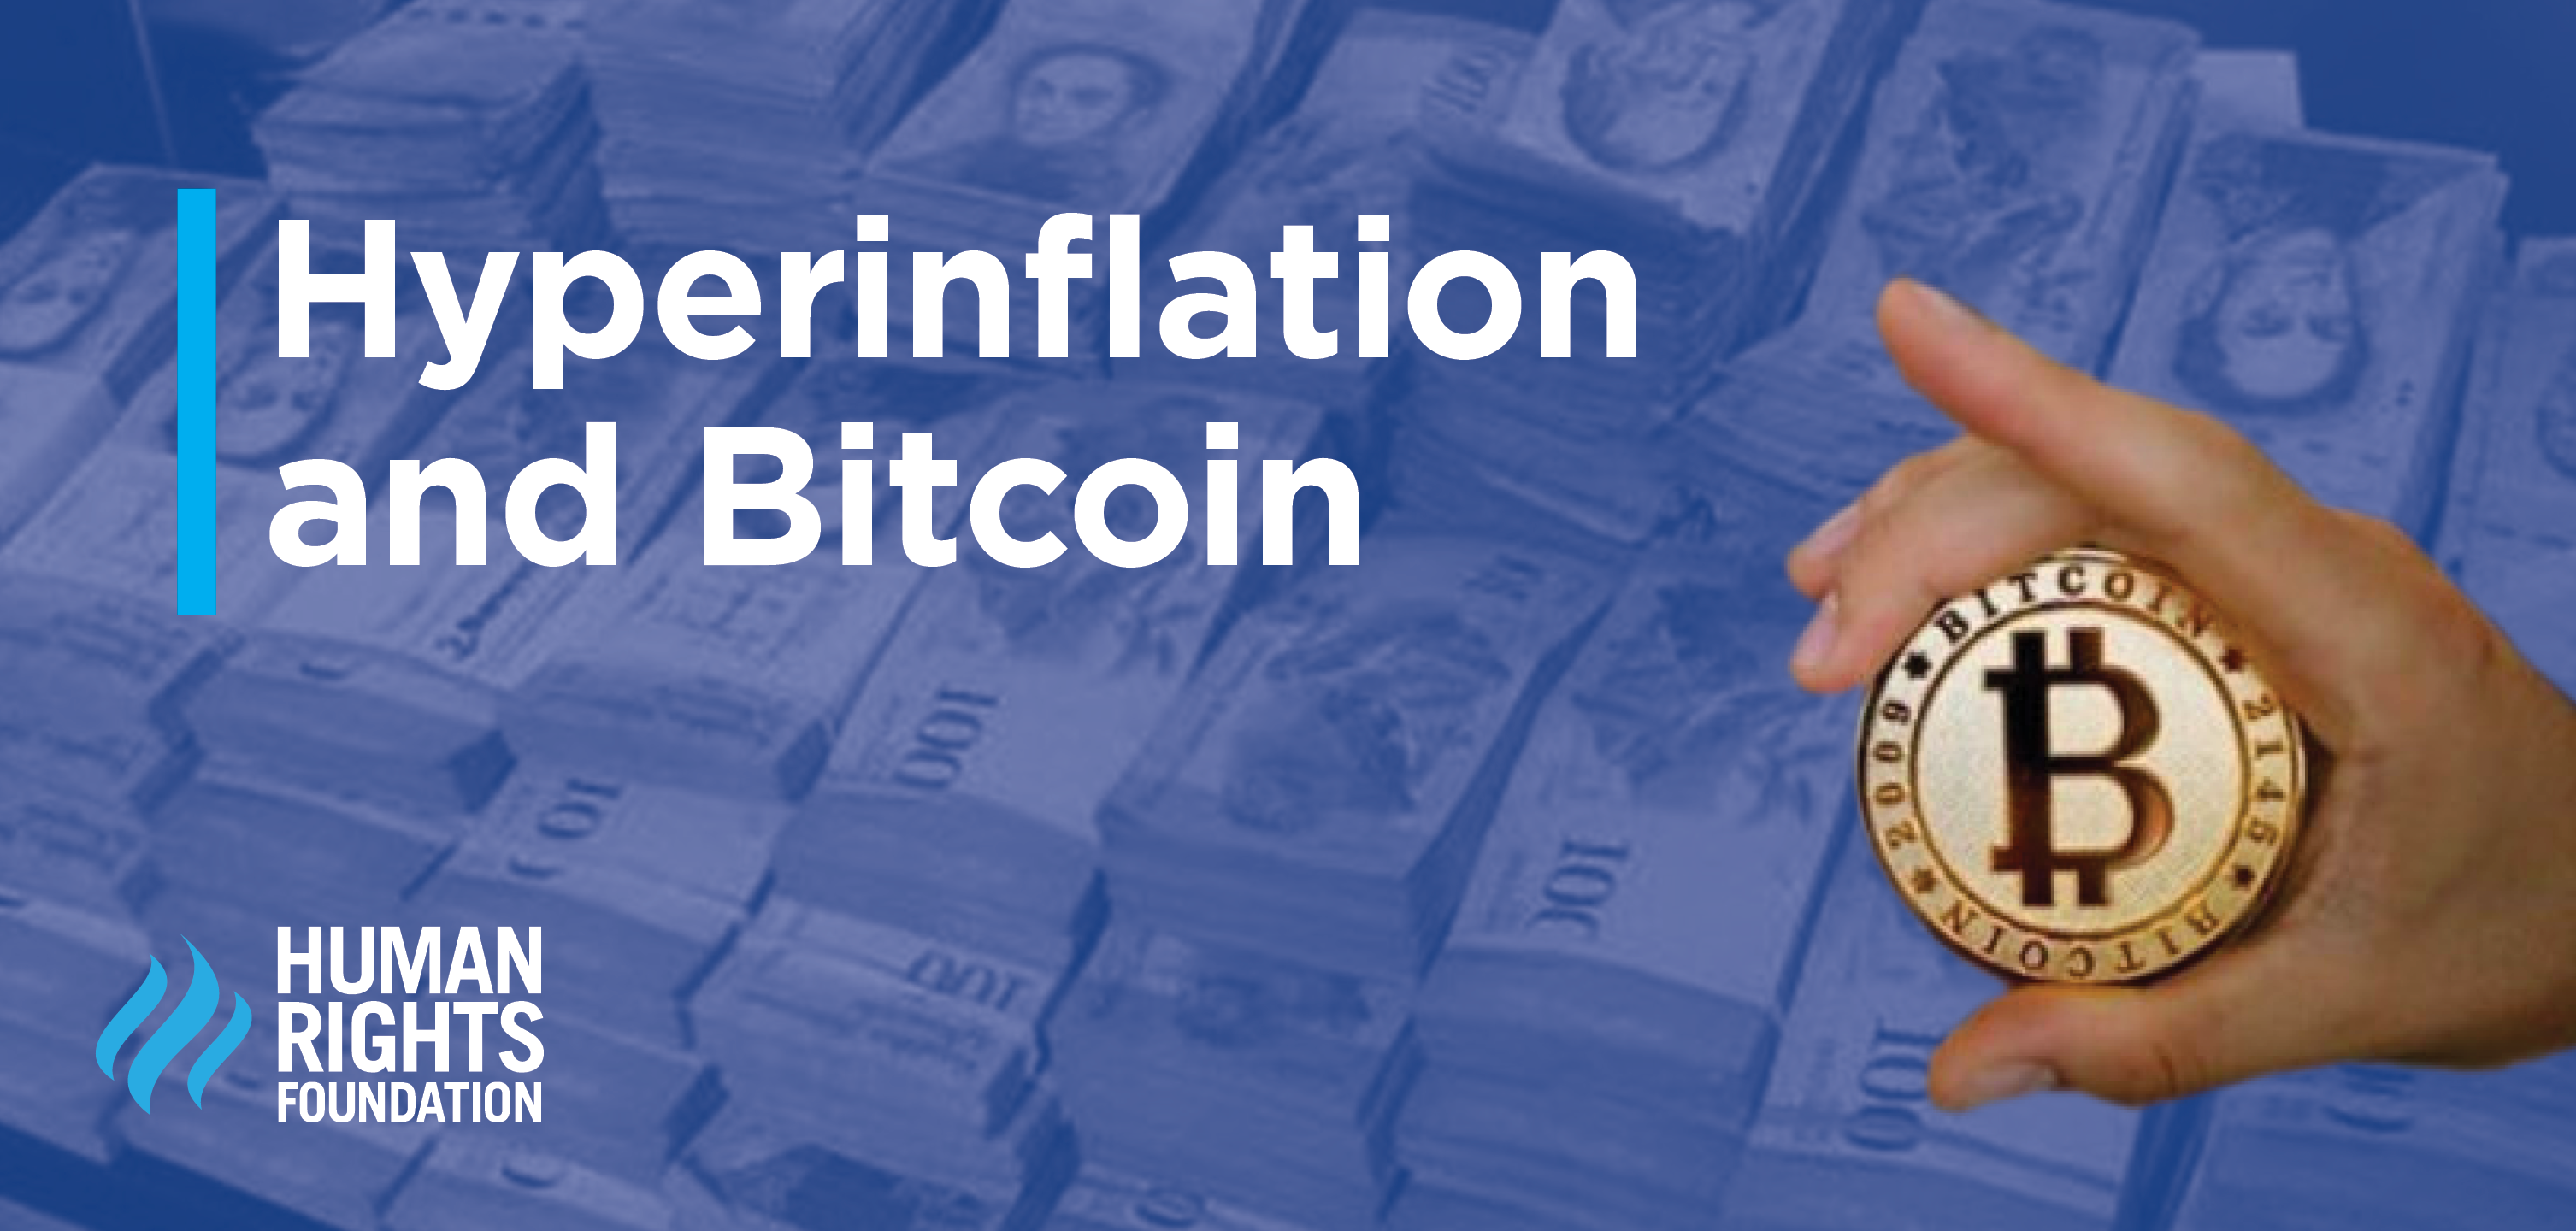 Hyperinflation and Bitcoin